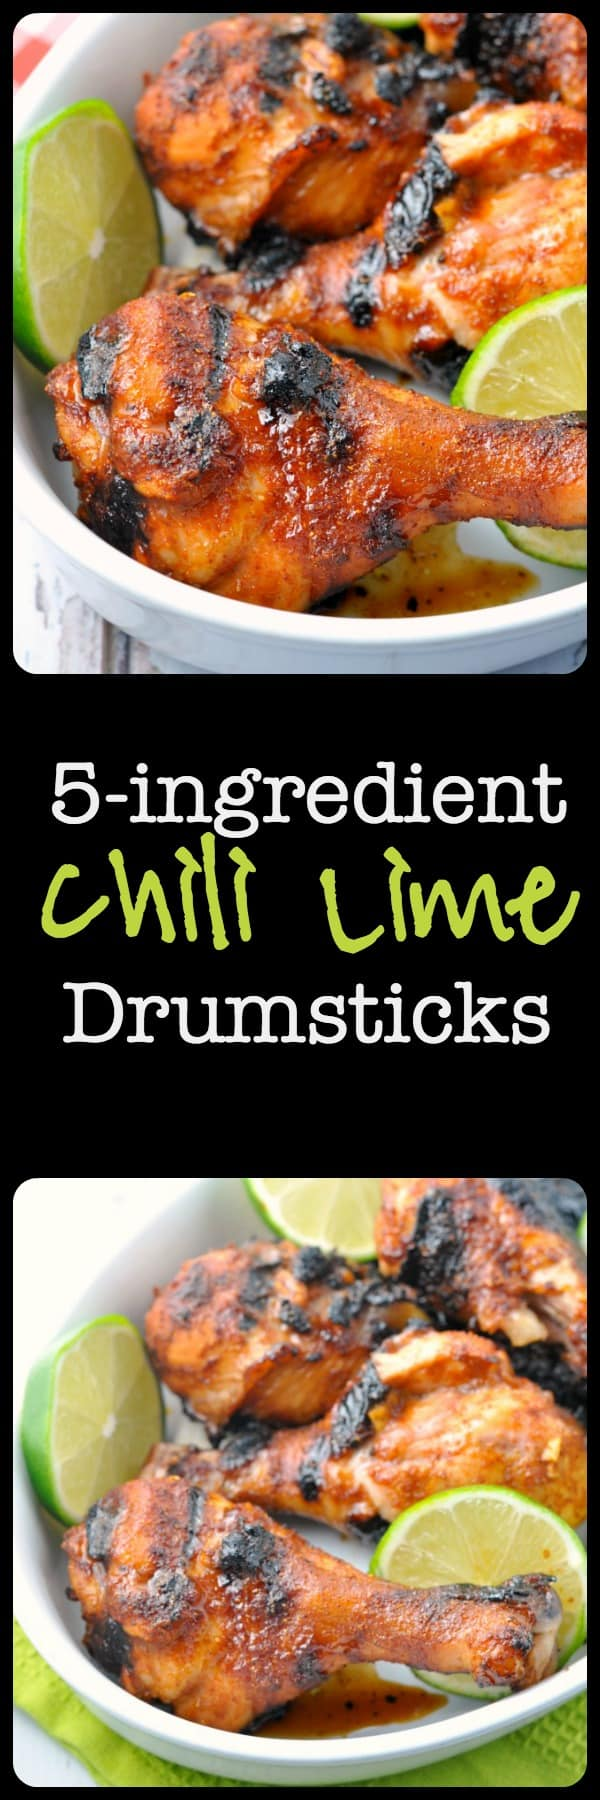 Quick and easy: chili, lime, garlic, honey. Keep it simple, but make it delicious! These 5-Ingredient Chili Lime Drumsticks make a quick and easy weeknight meal served with a salad. This recipe uses ingredients that you'll have on hand.